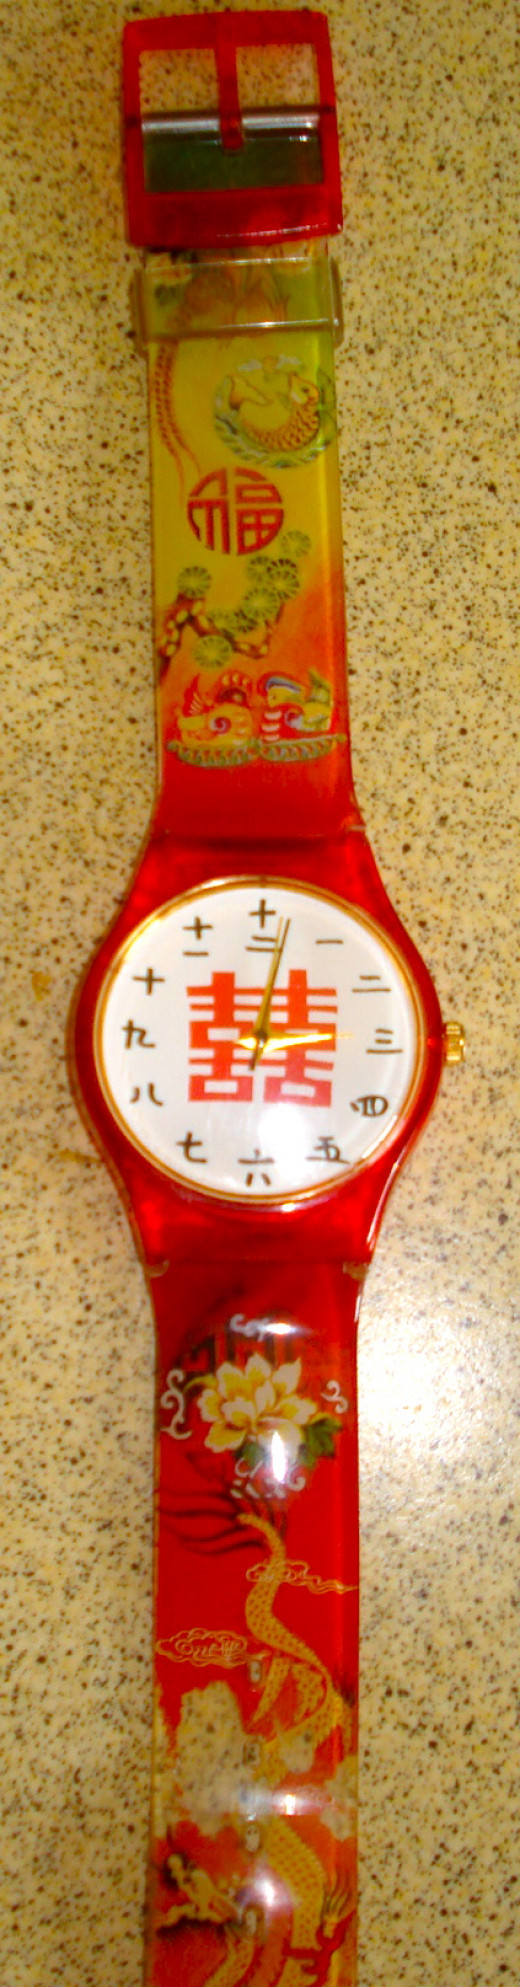 Chinese Battery Watch with Chinese Numerals